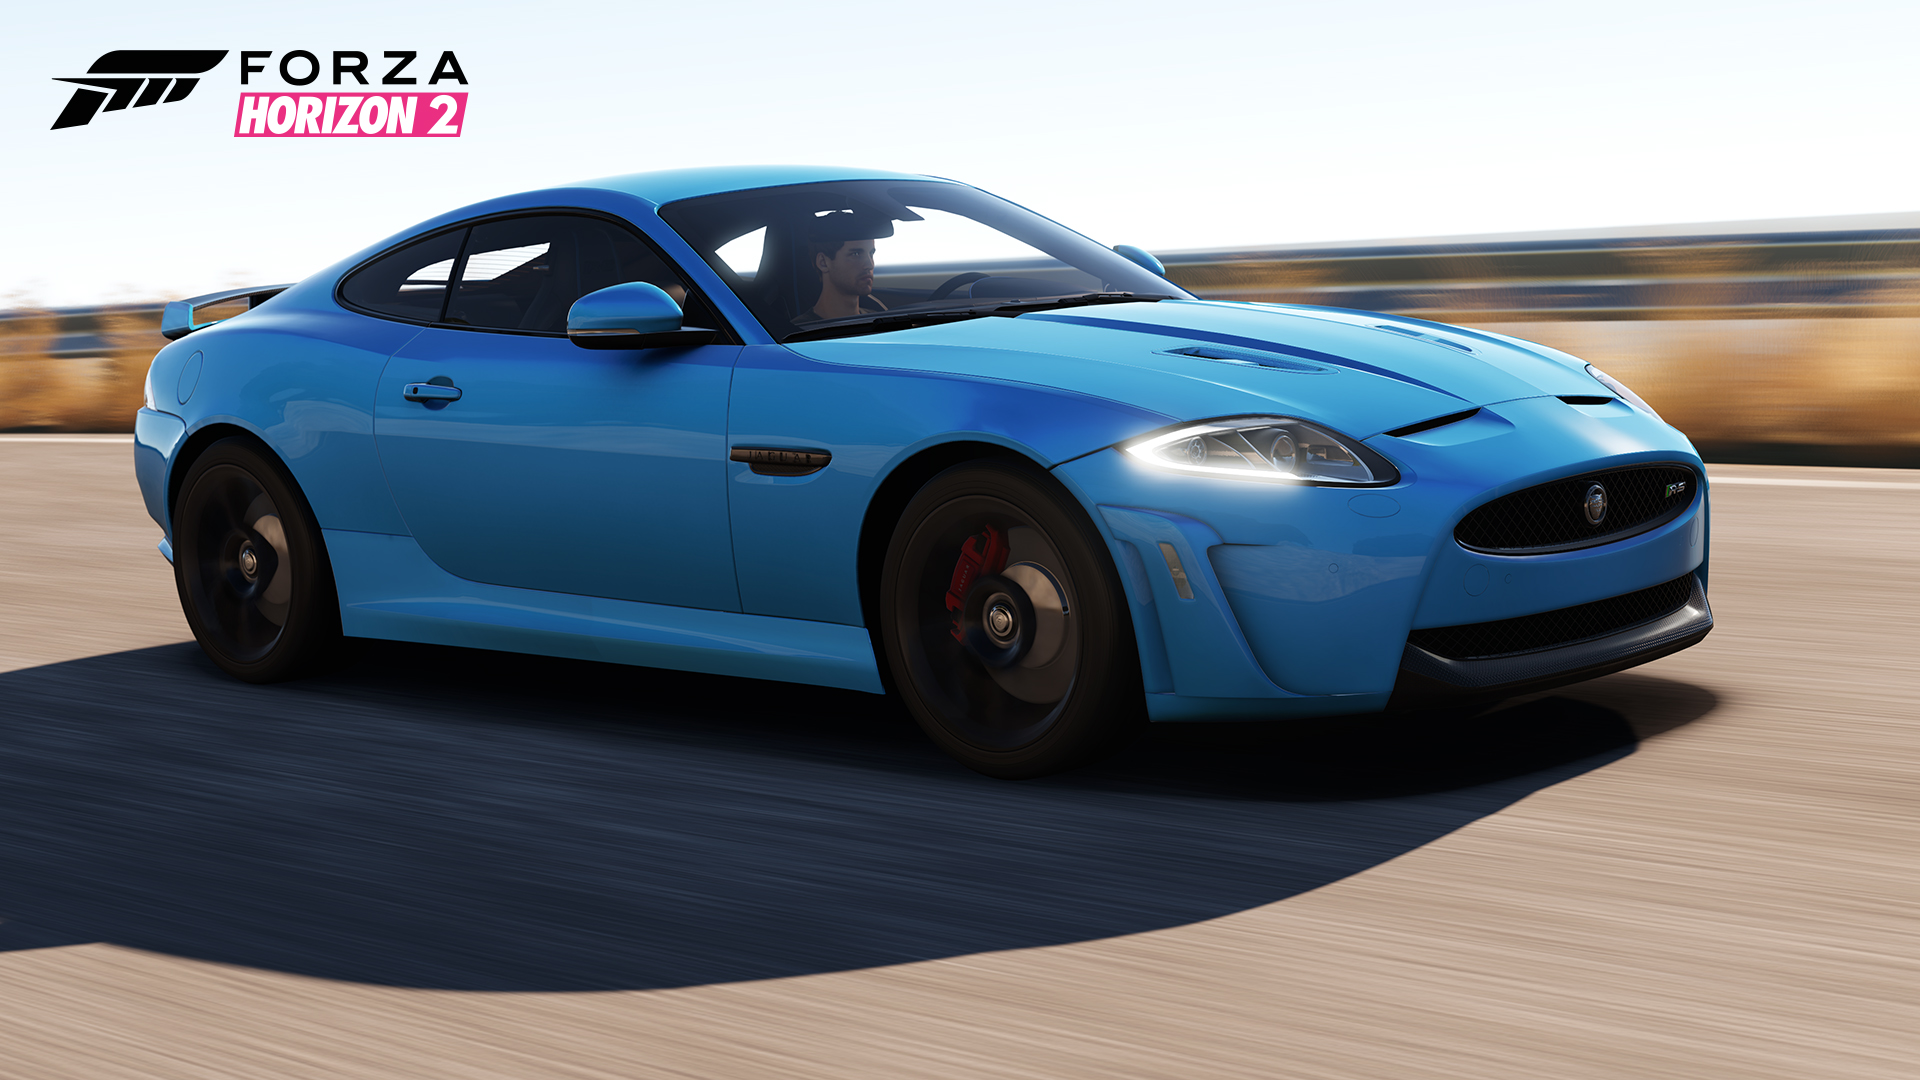 15 more cars added to the forza horizon 2 garage. Black Bedroom Furniture Sets. Home Design Ideas